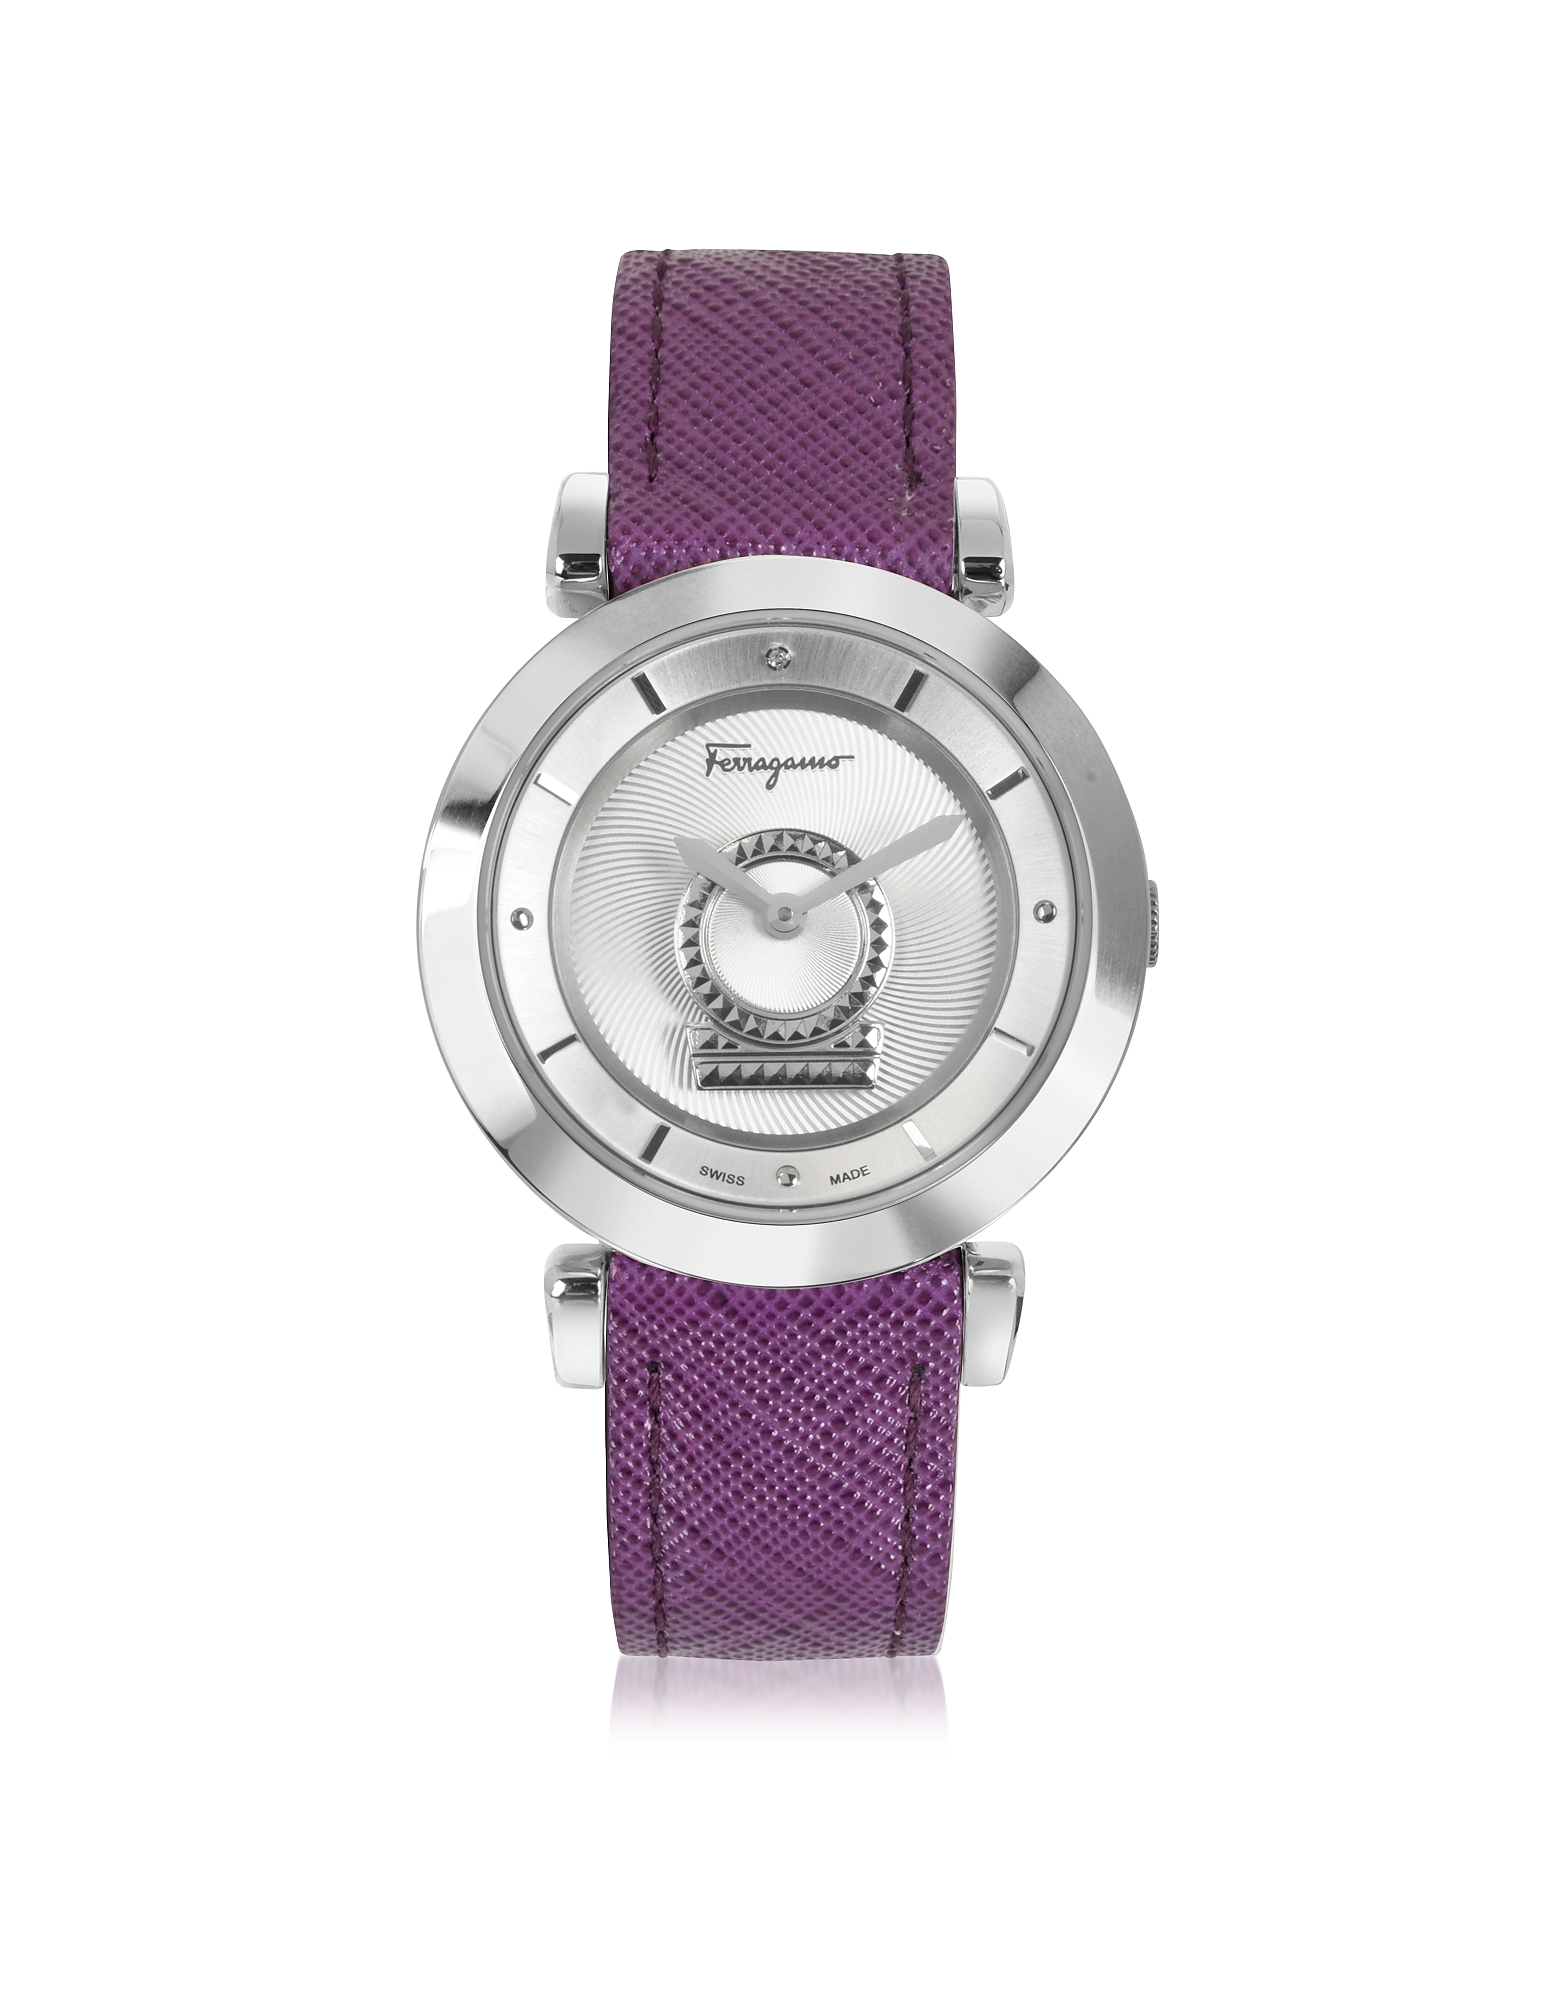 Salvatore Ferragamo Women's Watches, Minuetto Silver Tone Stainless Steel Case and Purple Leather St